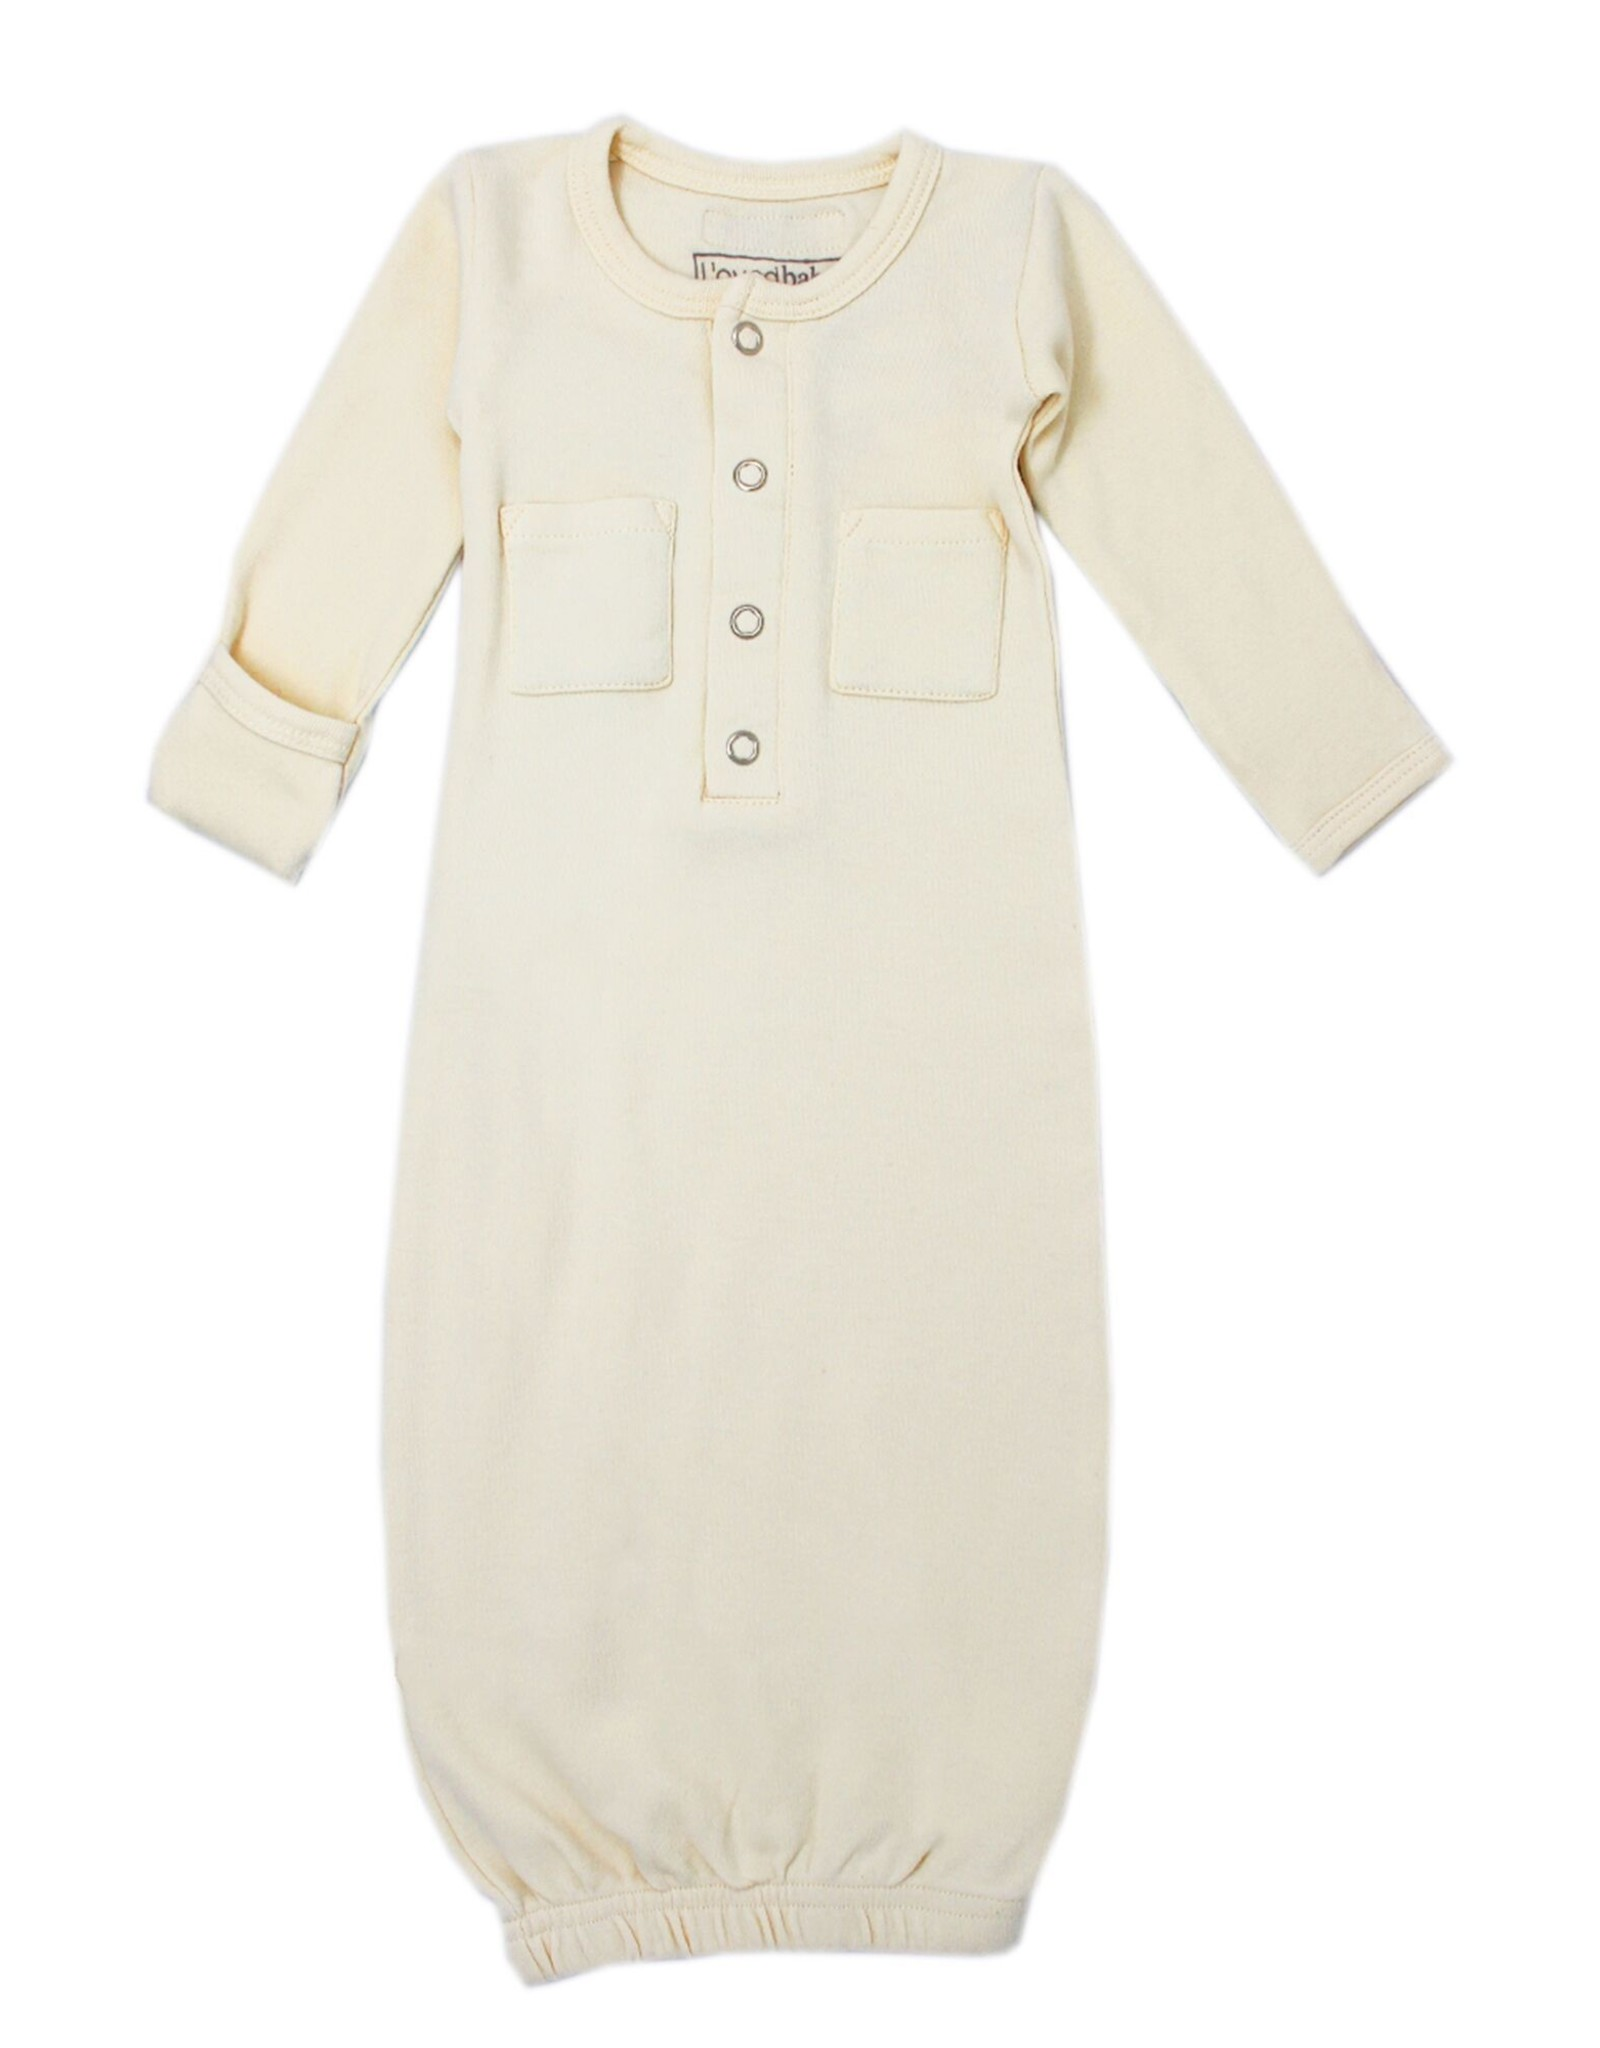 L'oved Baby Organic Cotton Baby Gown- Beige